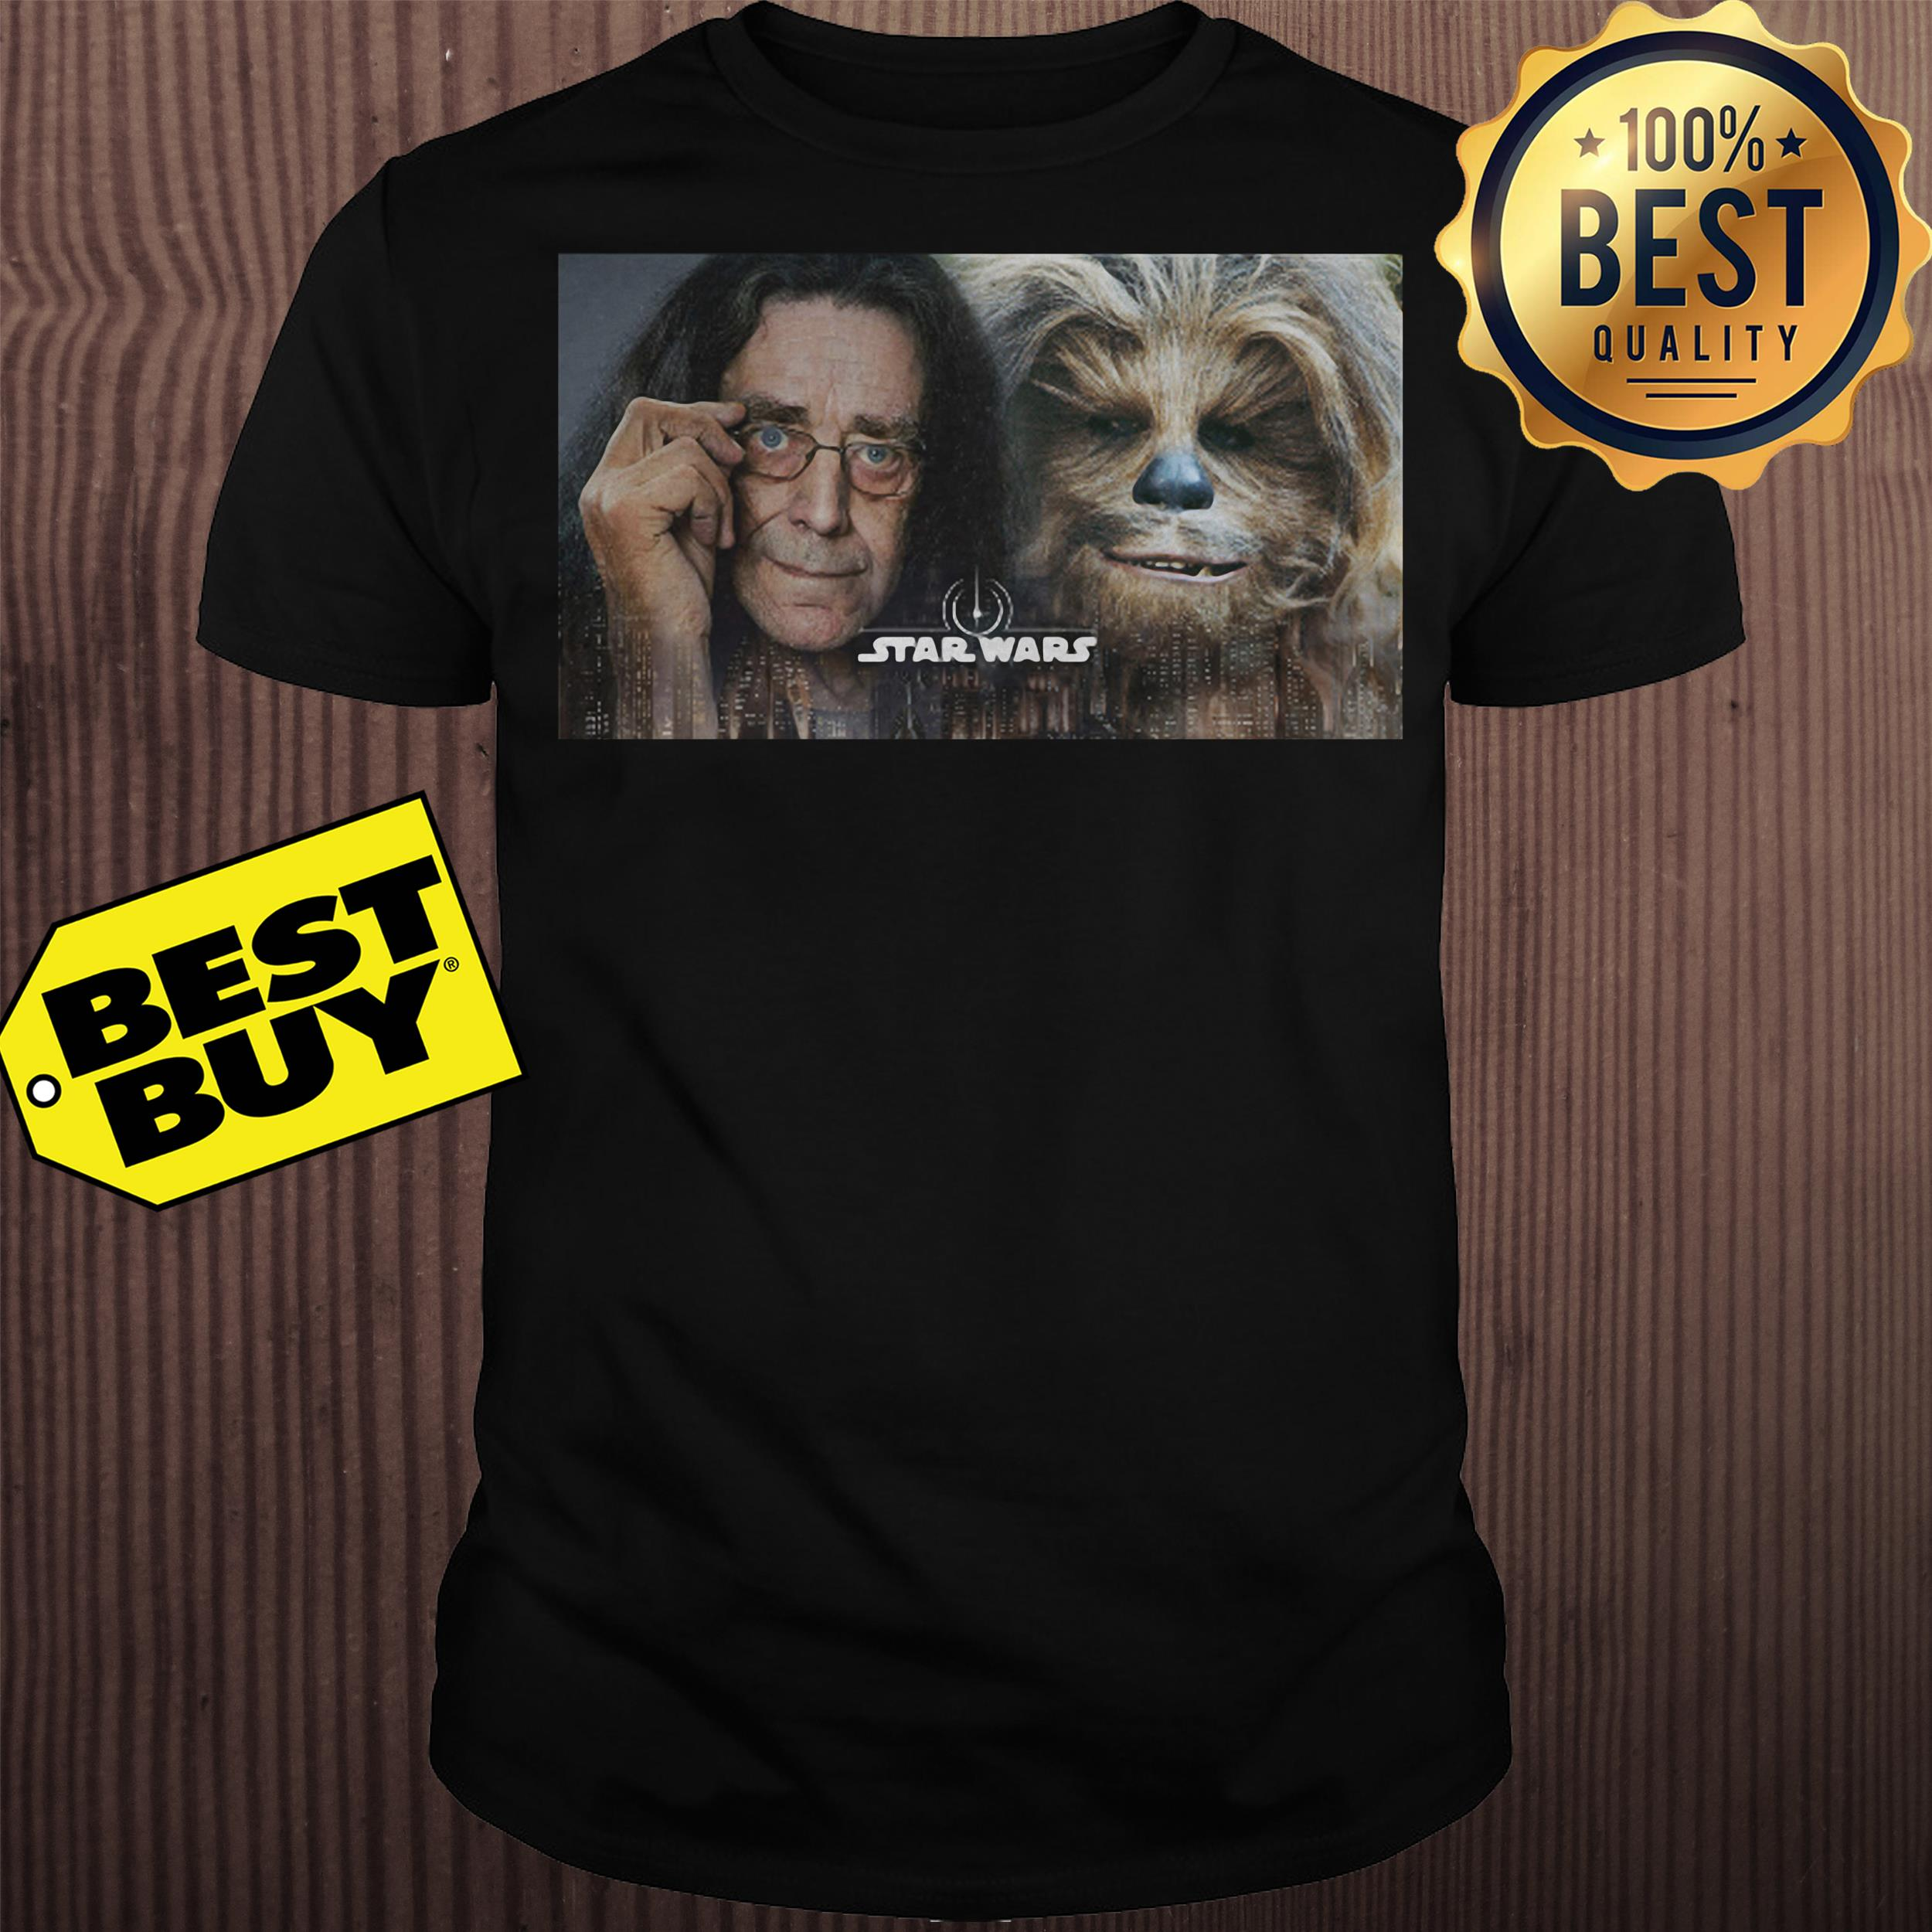 Chewbacca Peter Mayhew Star Wars Shirt